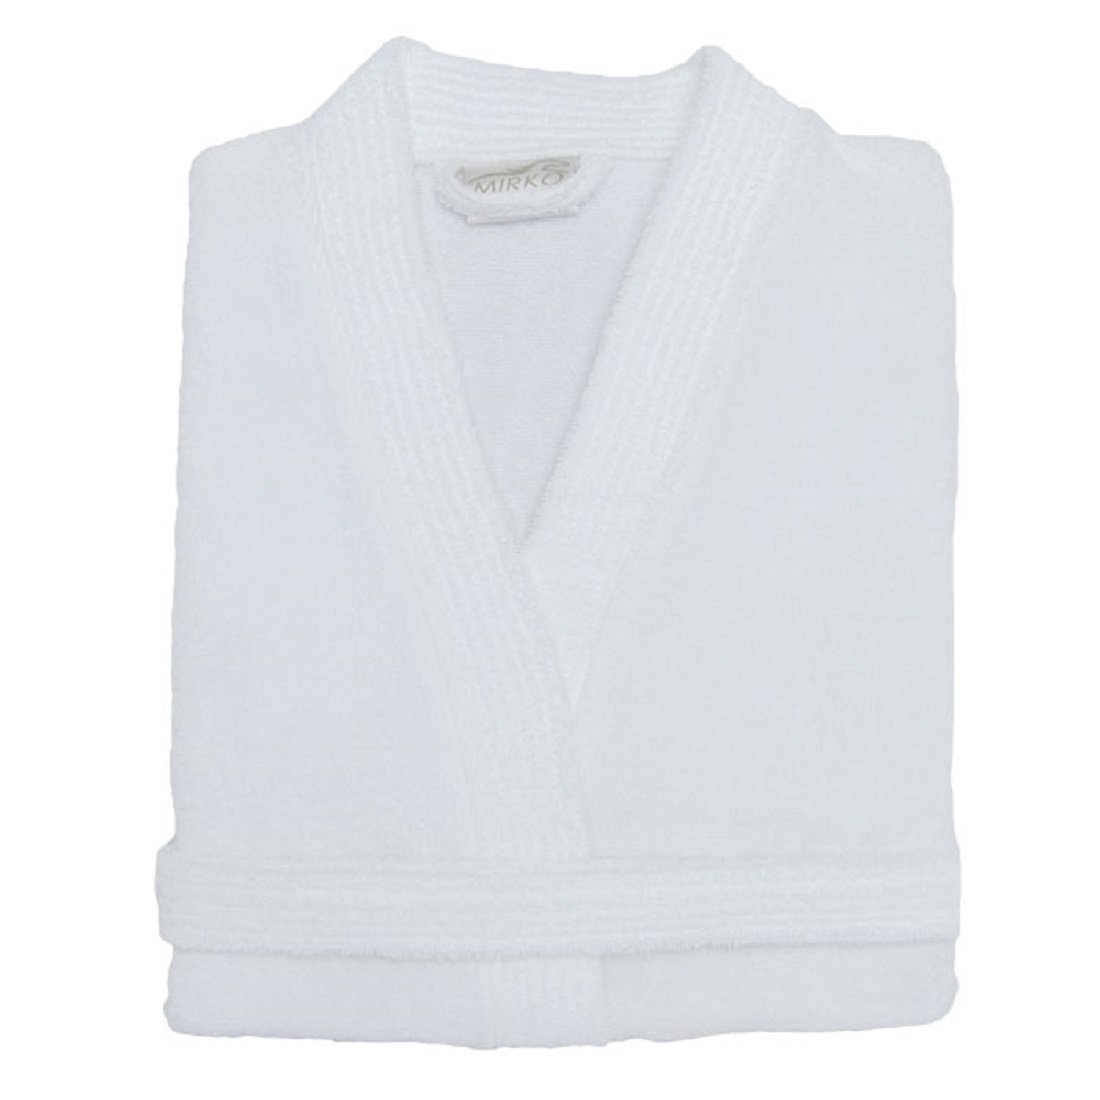 Terry Cloth Bathrobe%100 Cotton Men's Women's White Robe Best Gift for Her